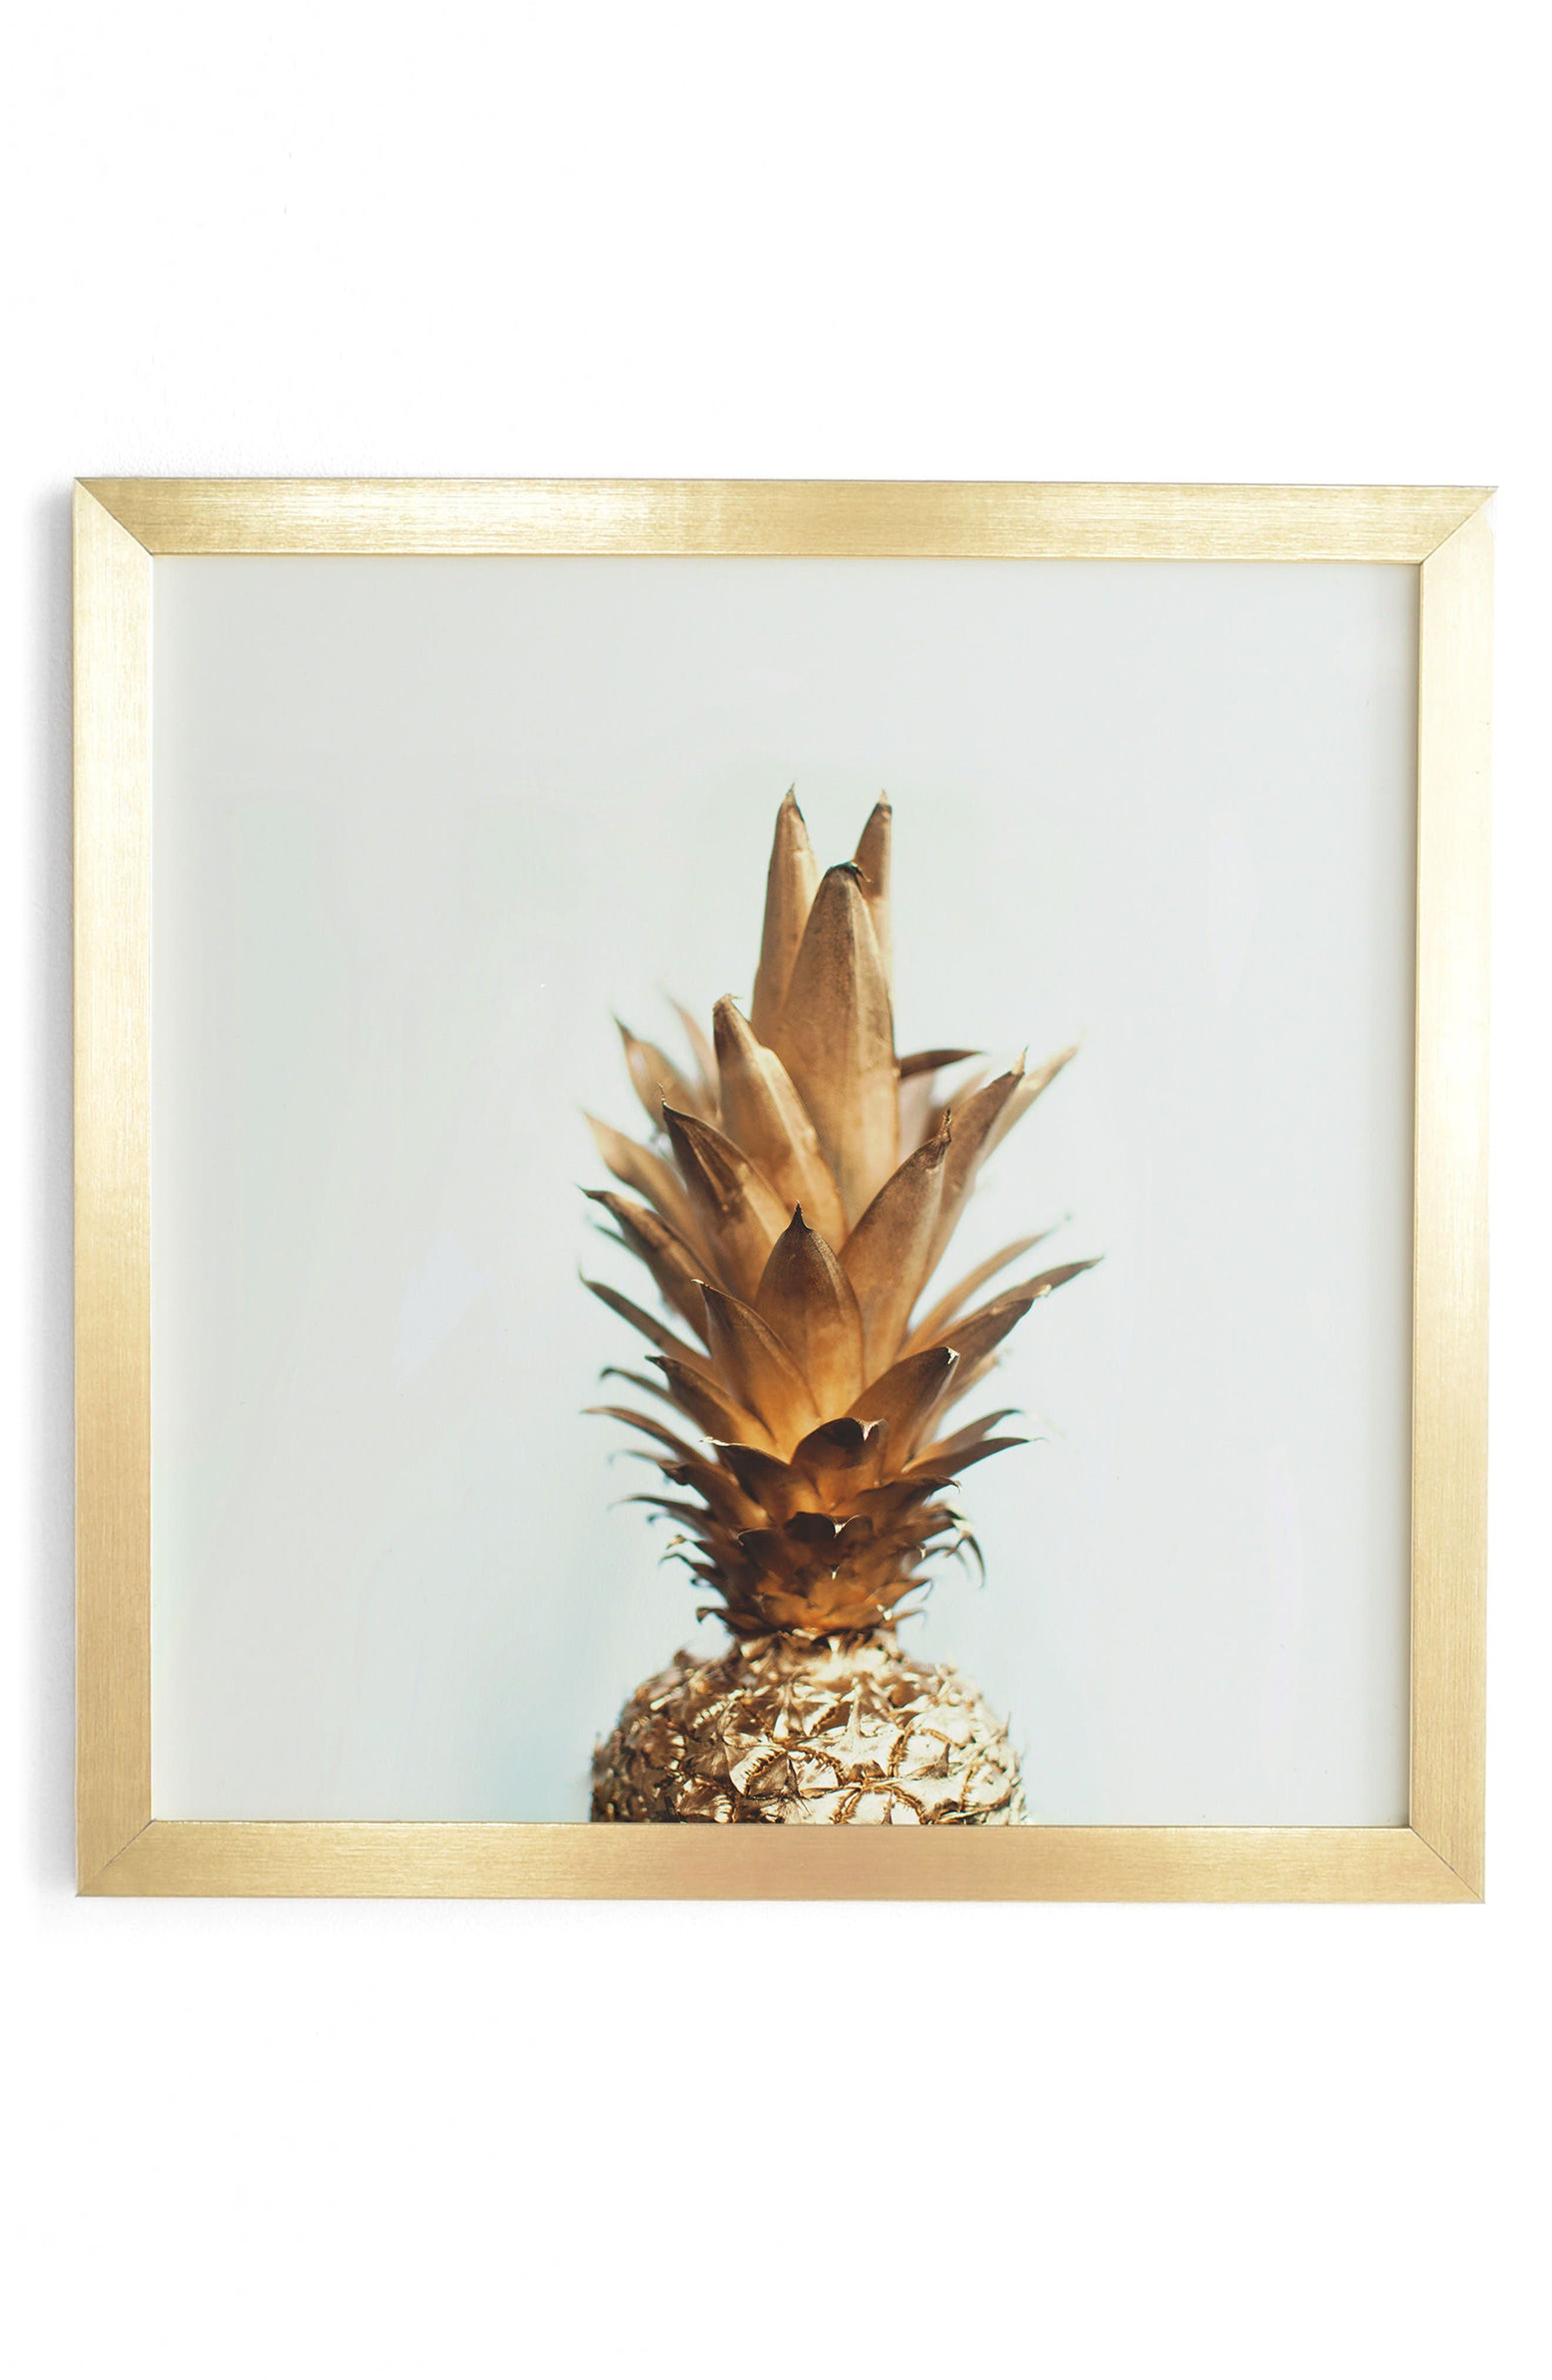 Main Image - Deny Designs The Gold Pineapple Framed Wall Art